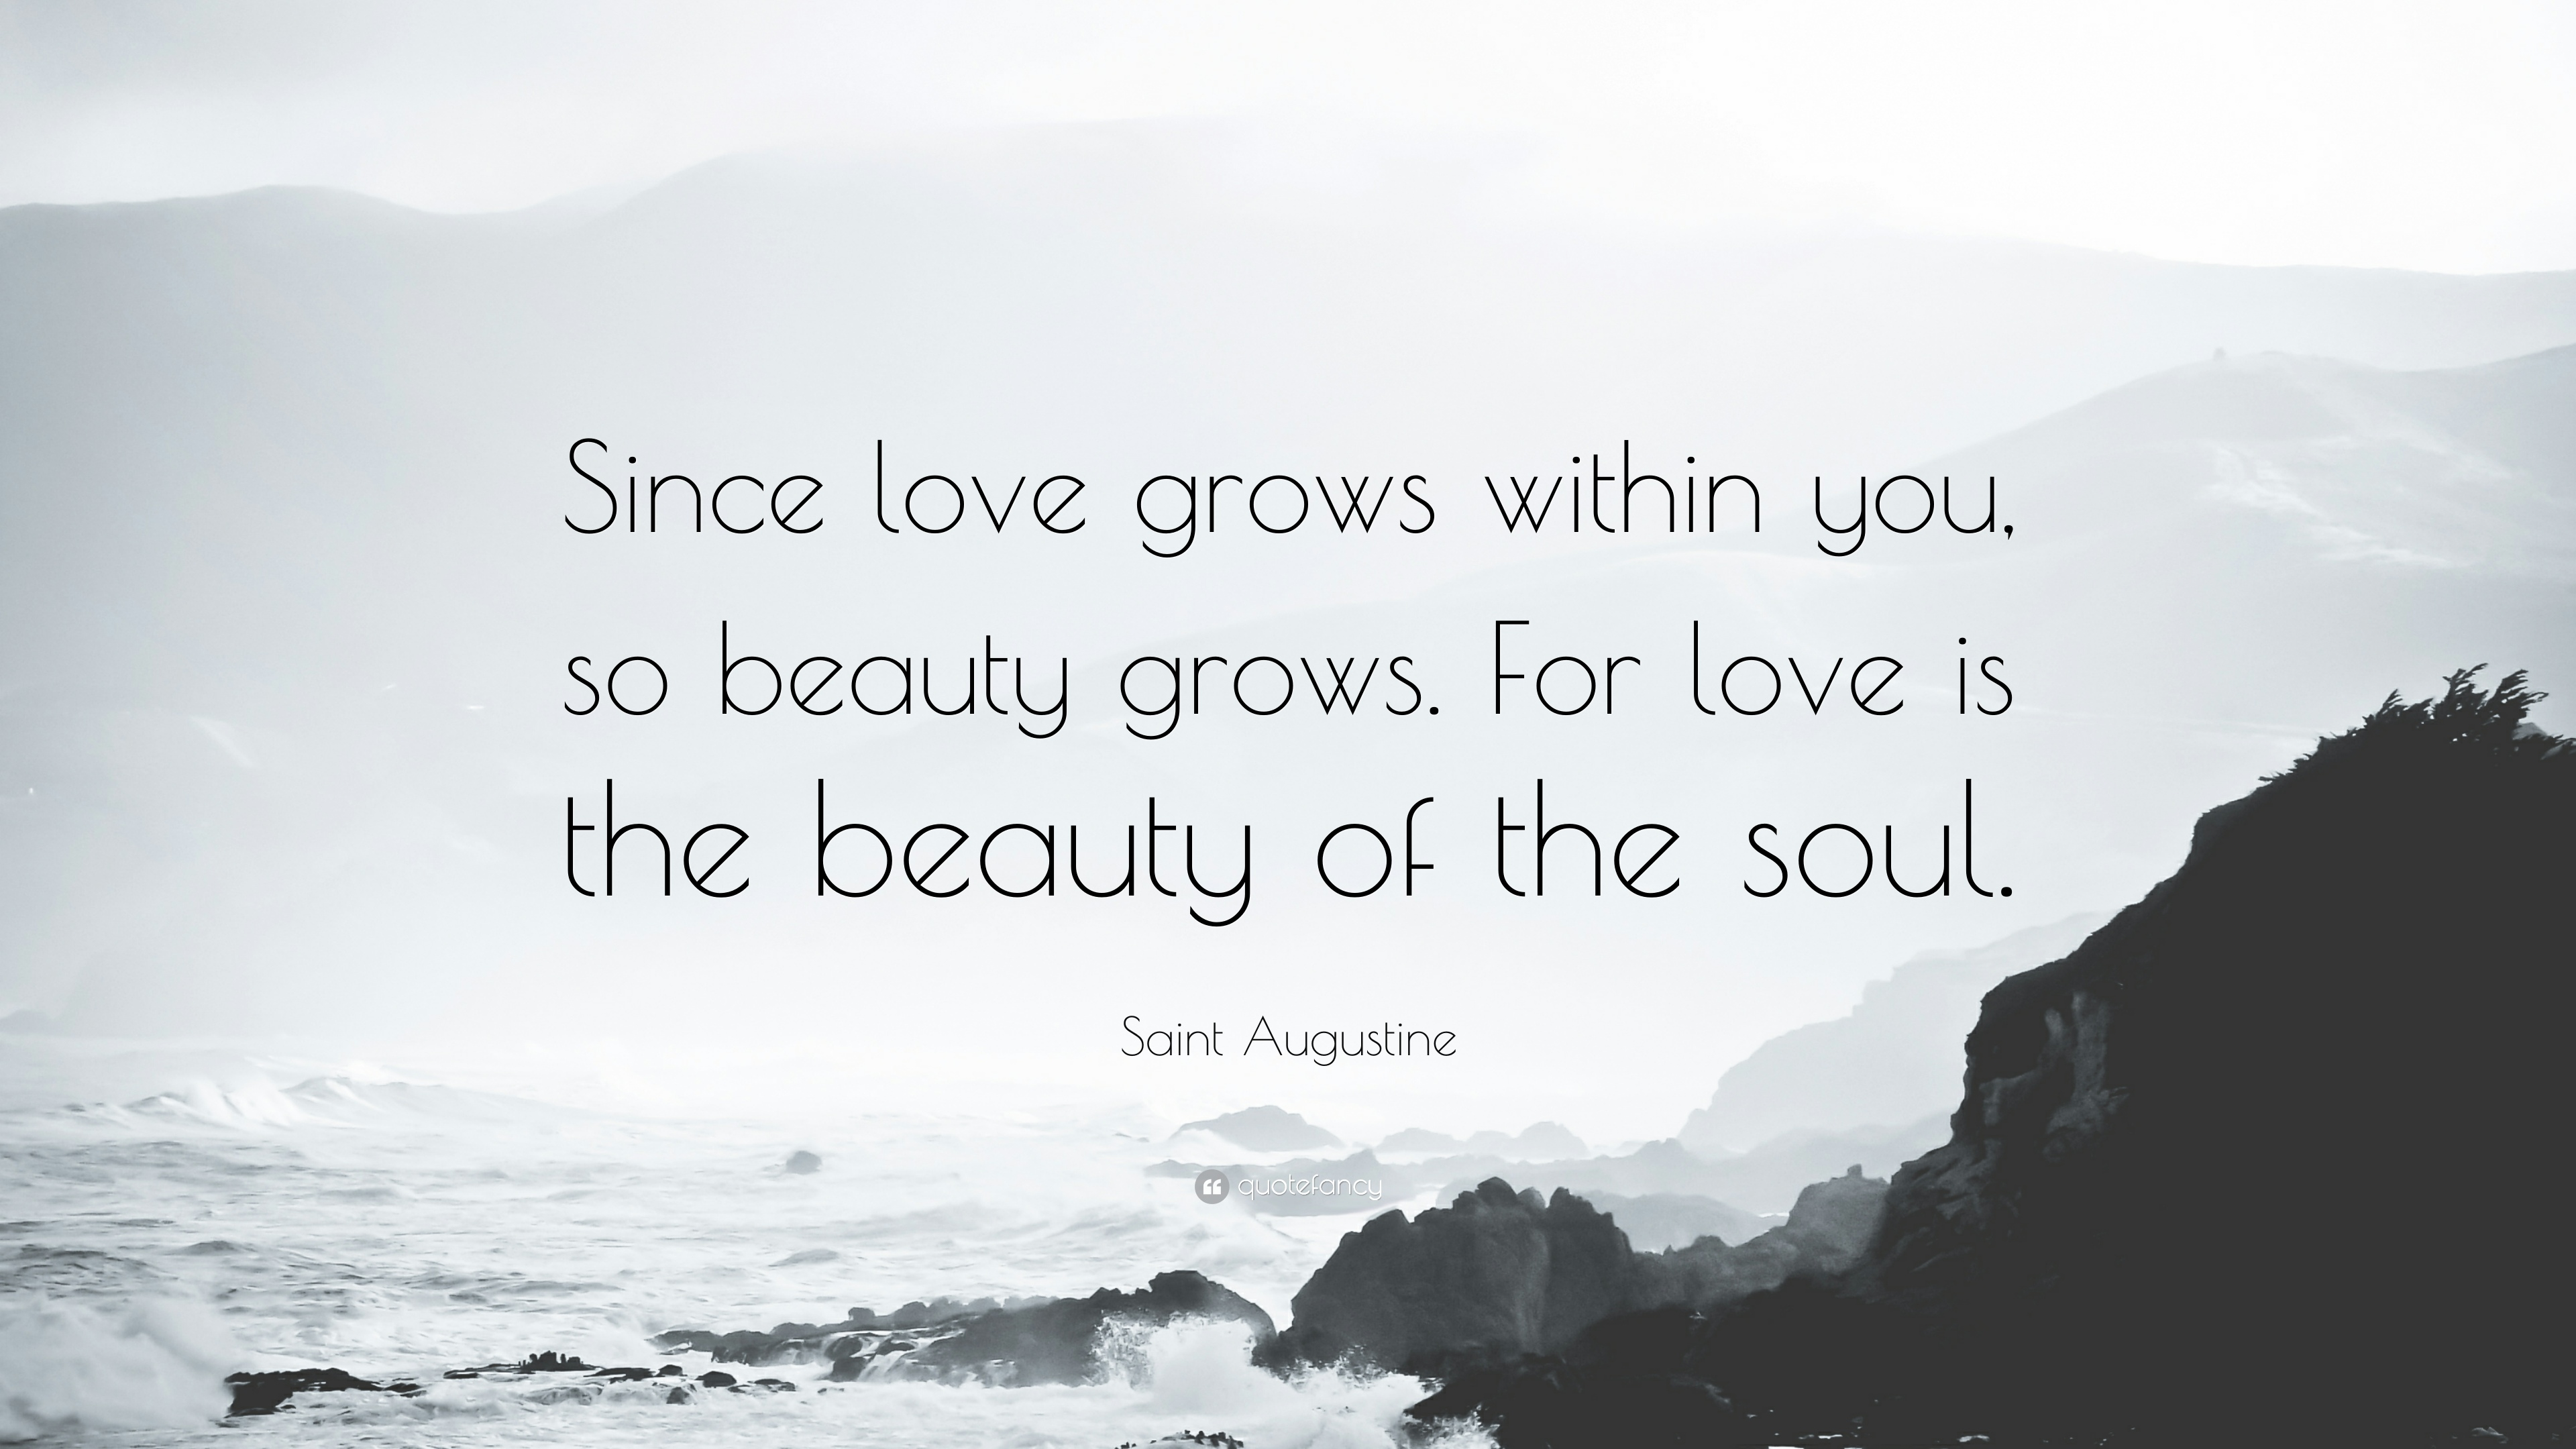 Soul Quotes: U201cSince Love Grows Within You, So Beauty Grows. For Love